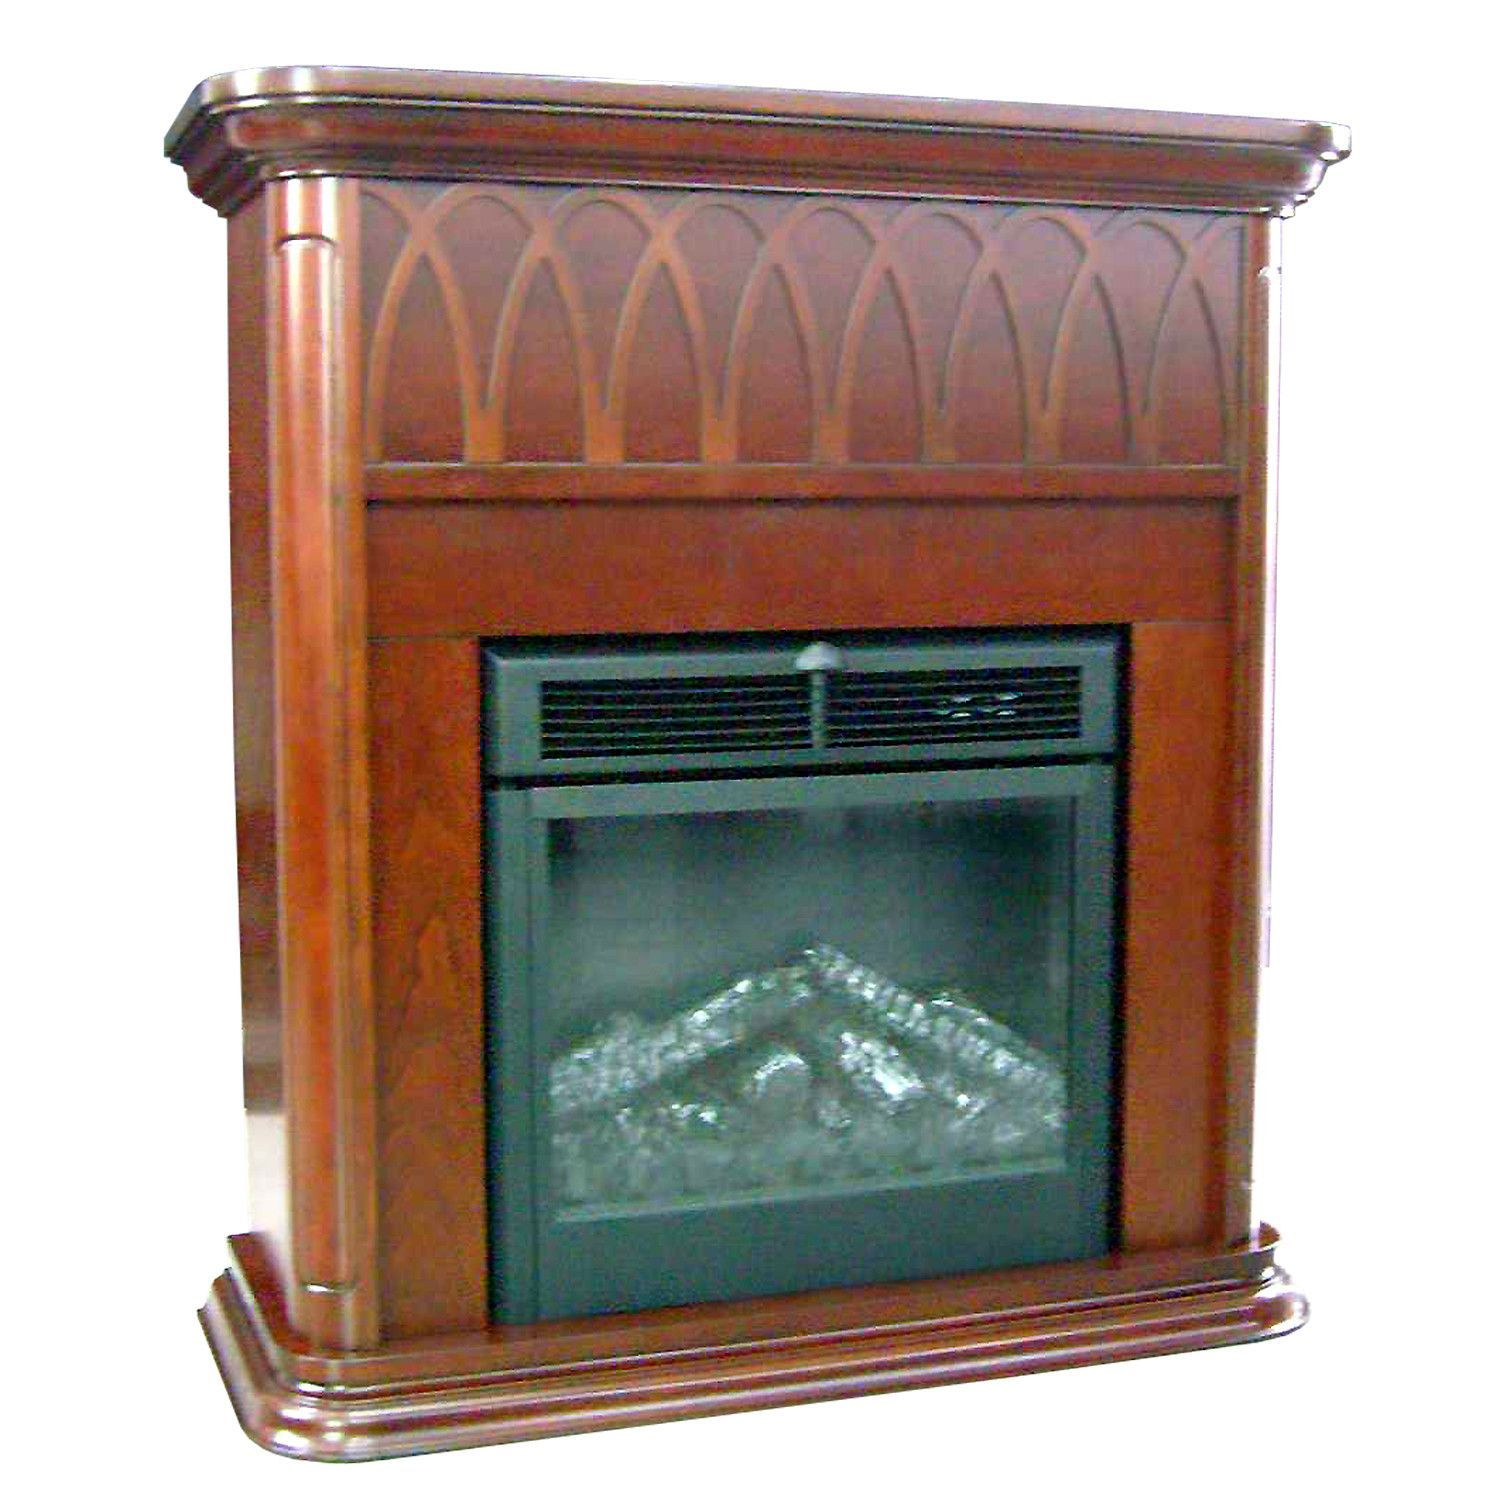 ea0dc19ffdf31f15c85639eb612e4ecd Top Result 50 Awesome Corner Electric Fireplace Pic 2018 Jdt4